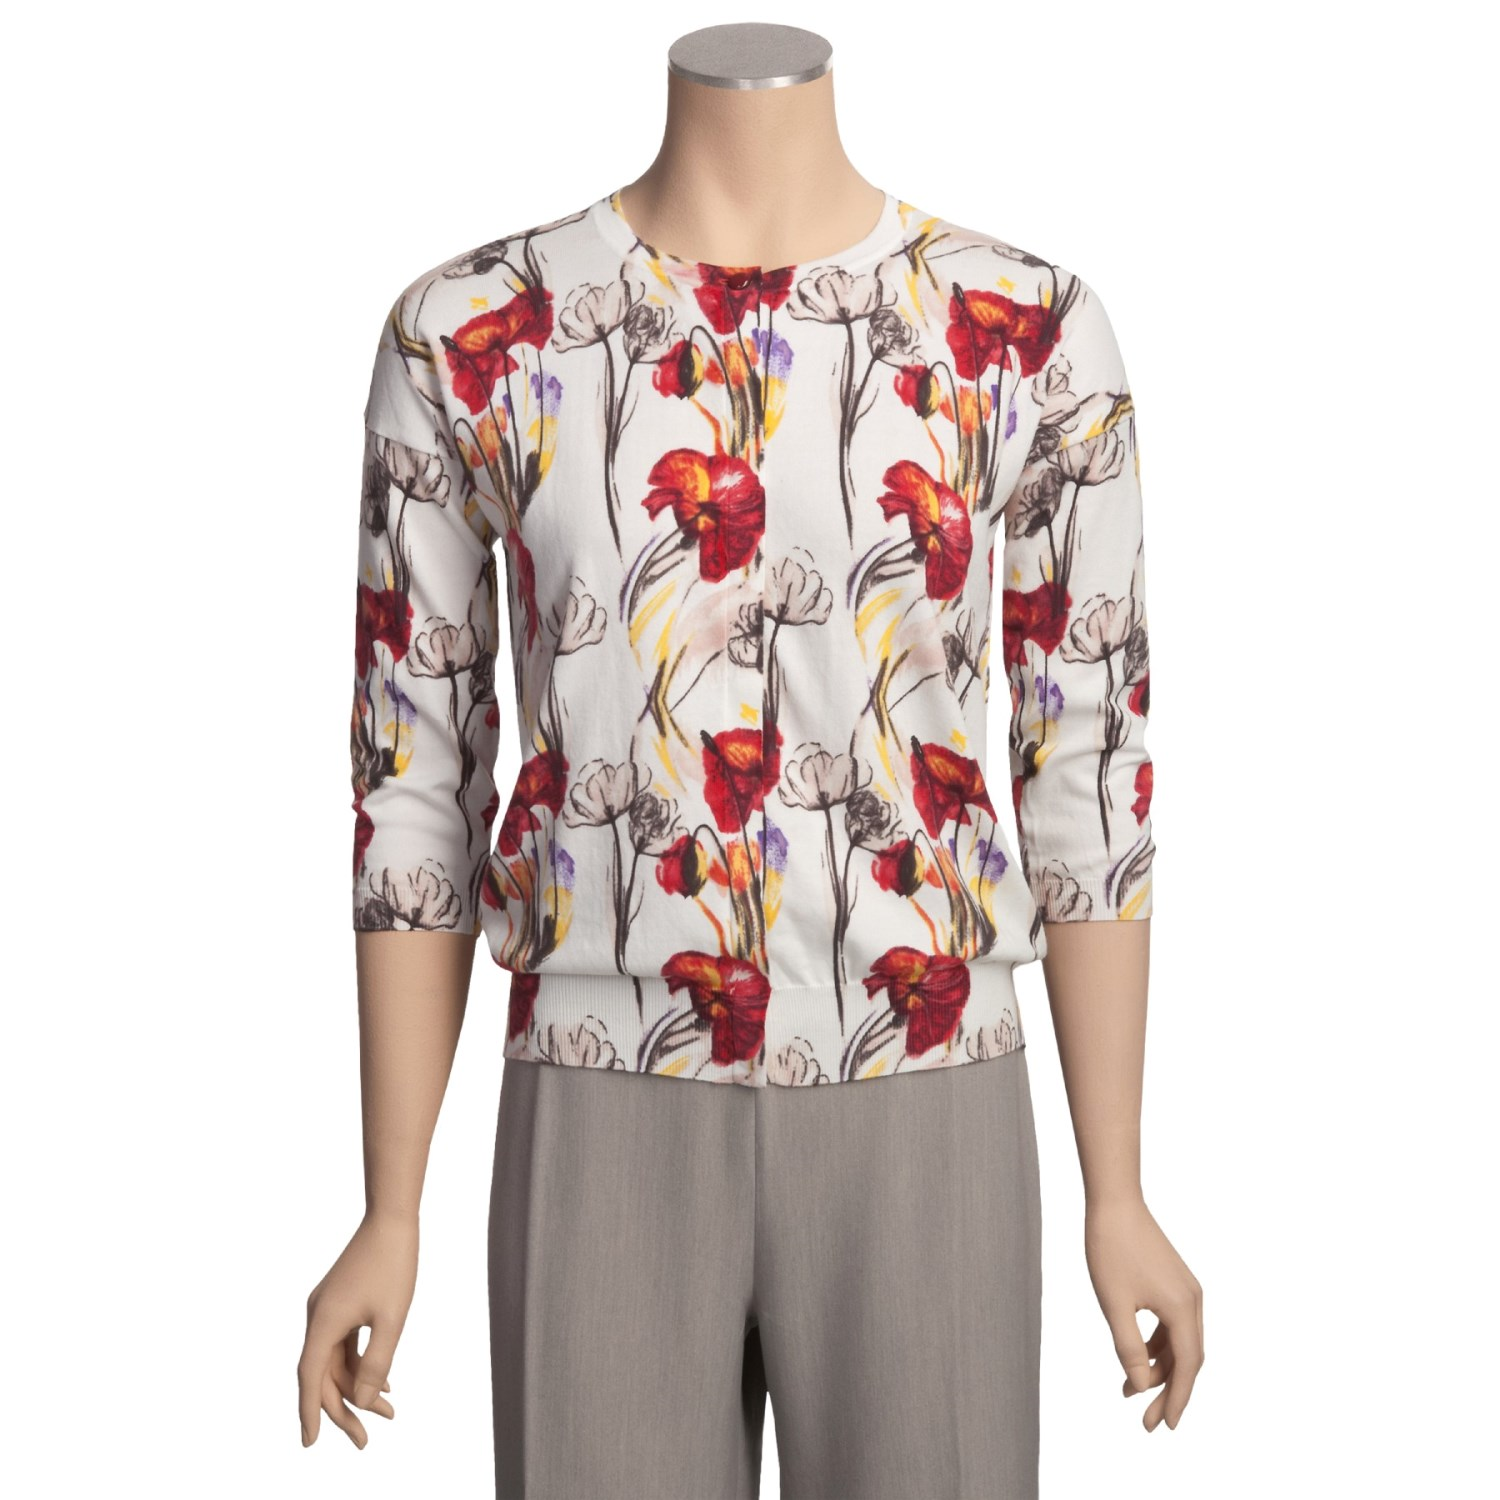 Shop our Collection of Women's Cardigan Sweaters at disborunmaba.ga for the Latest Designer Brands & Styles. FREE SHIPPING AVAILABLE! Macy's Presents: The Edit- A curated mix of fashion and inspiration Check It Out. Calvin Klein Floral-Print Cardigan.